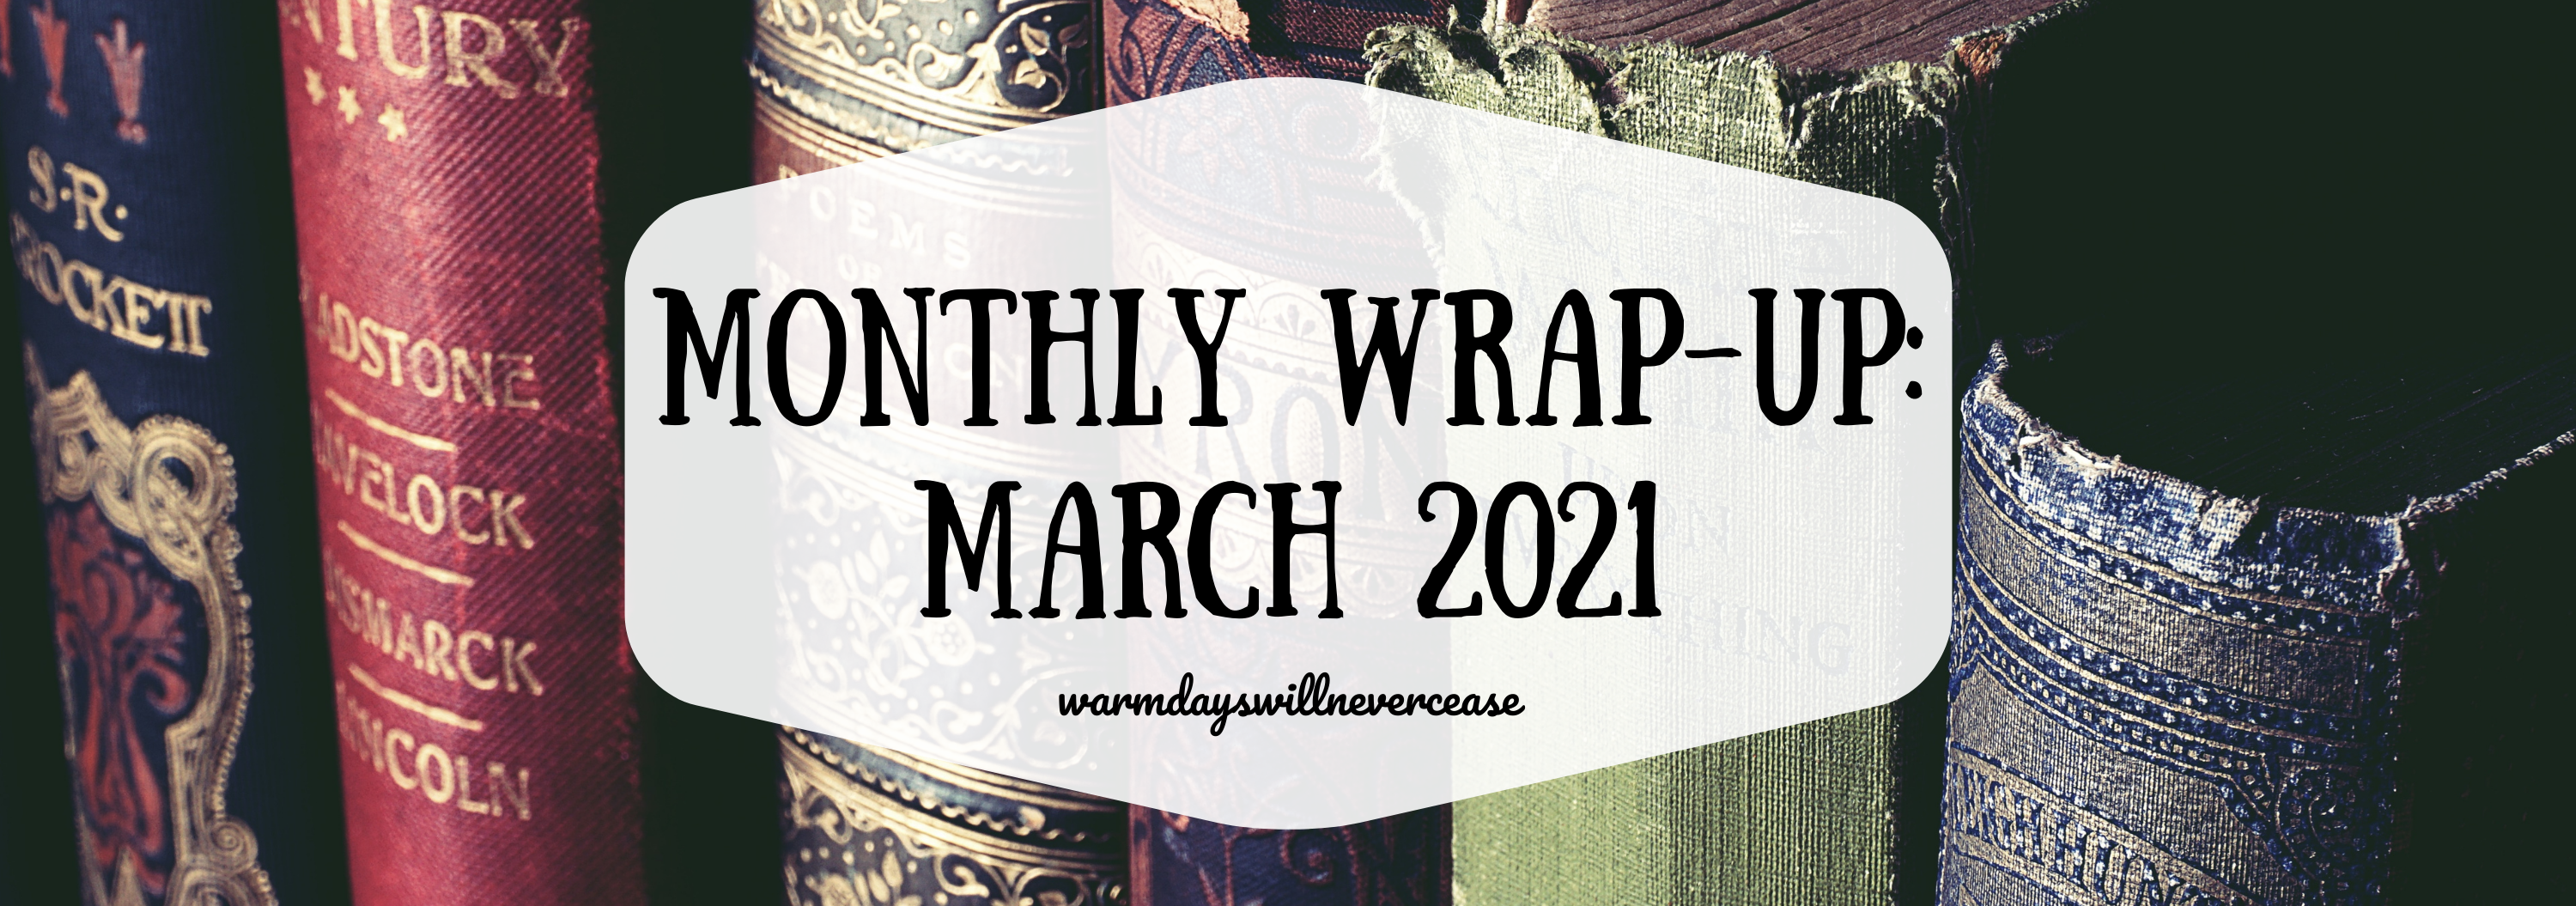 Mar 2021 Monthly Wrap Up